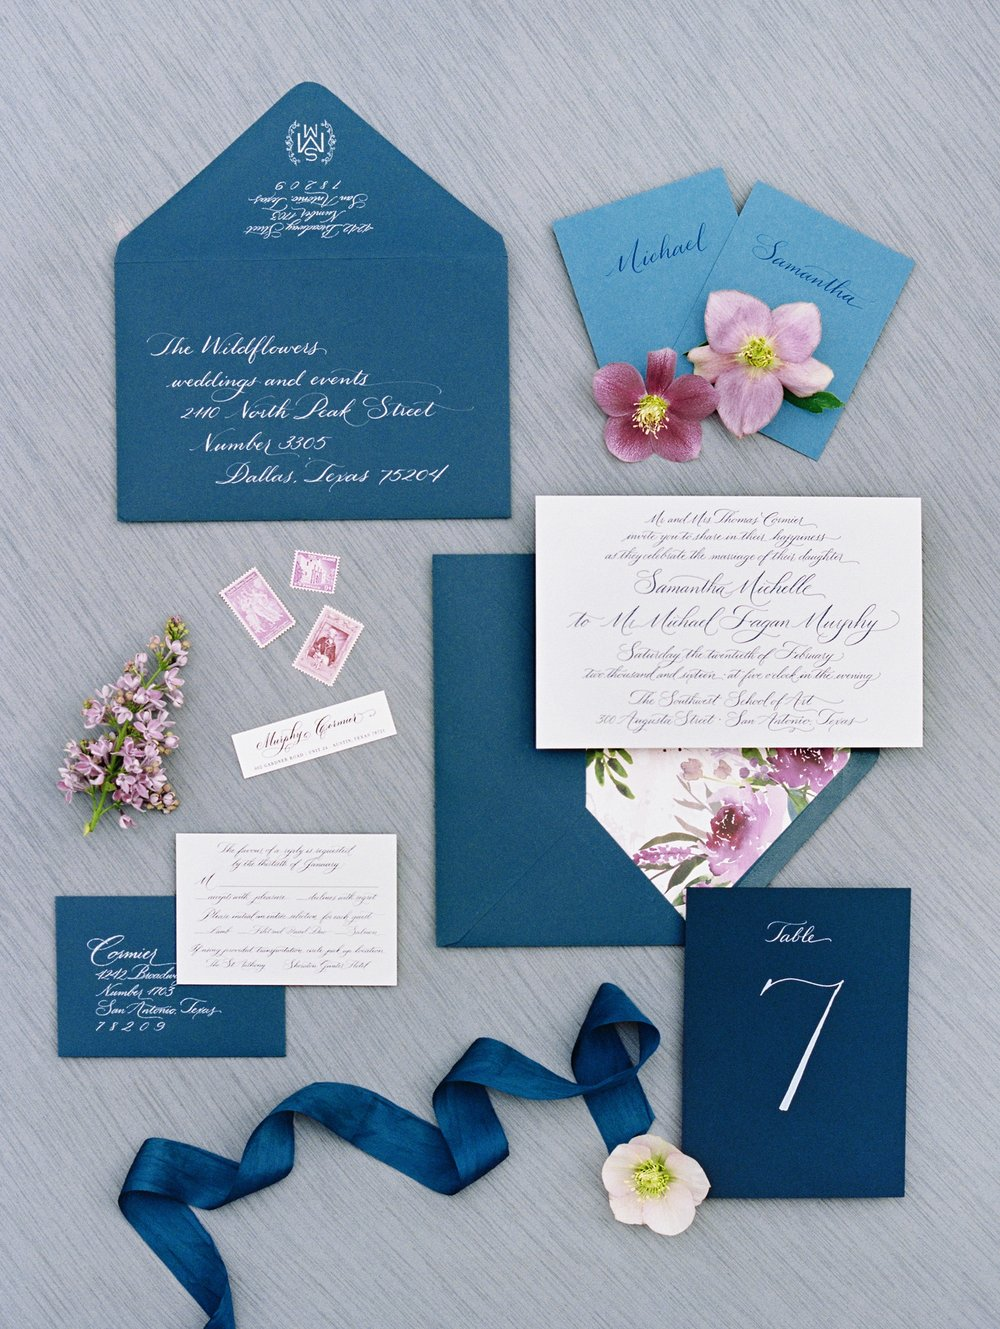 Deep, Luxe Blues And Light Translucent Watercolors Inspired This Invitation  Suite | The Wildflowers Featured